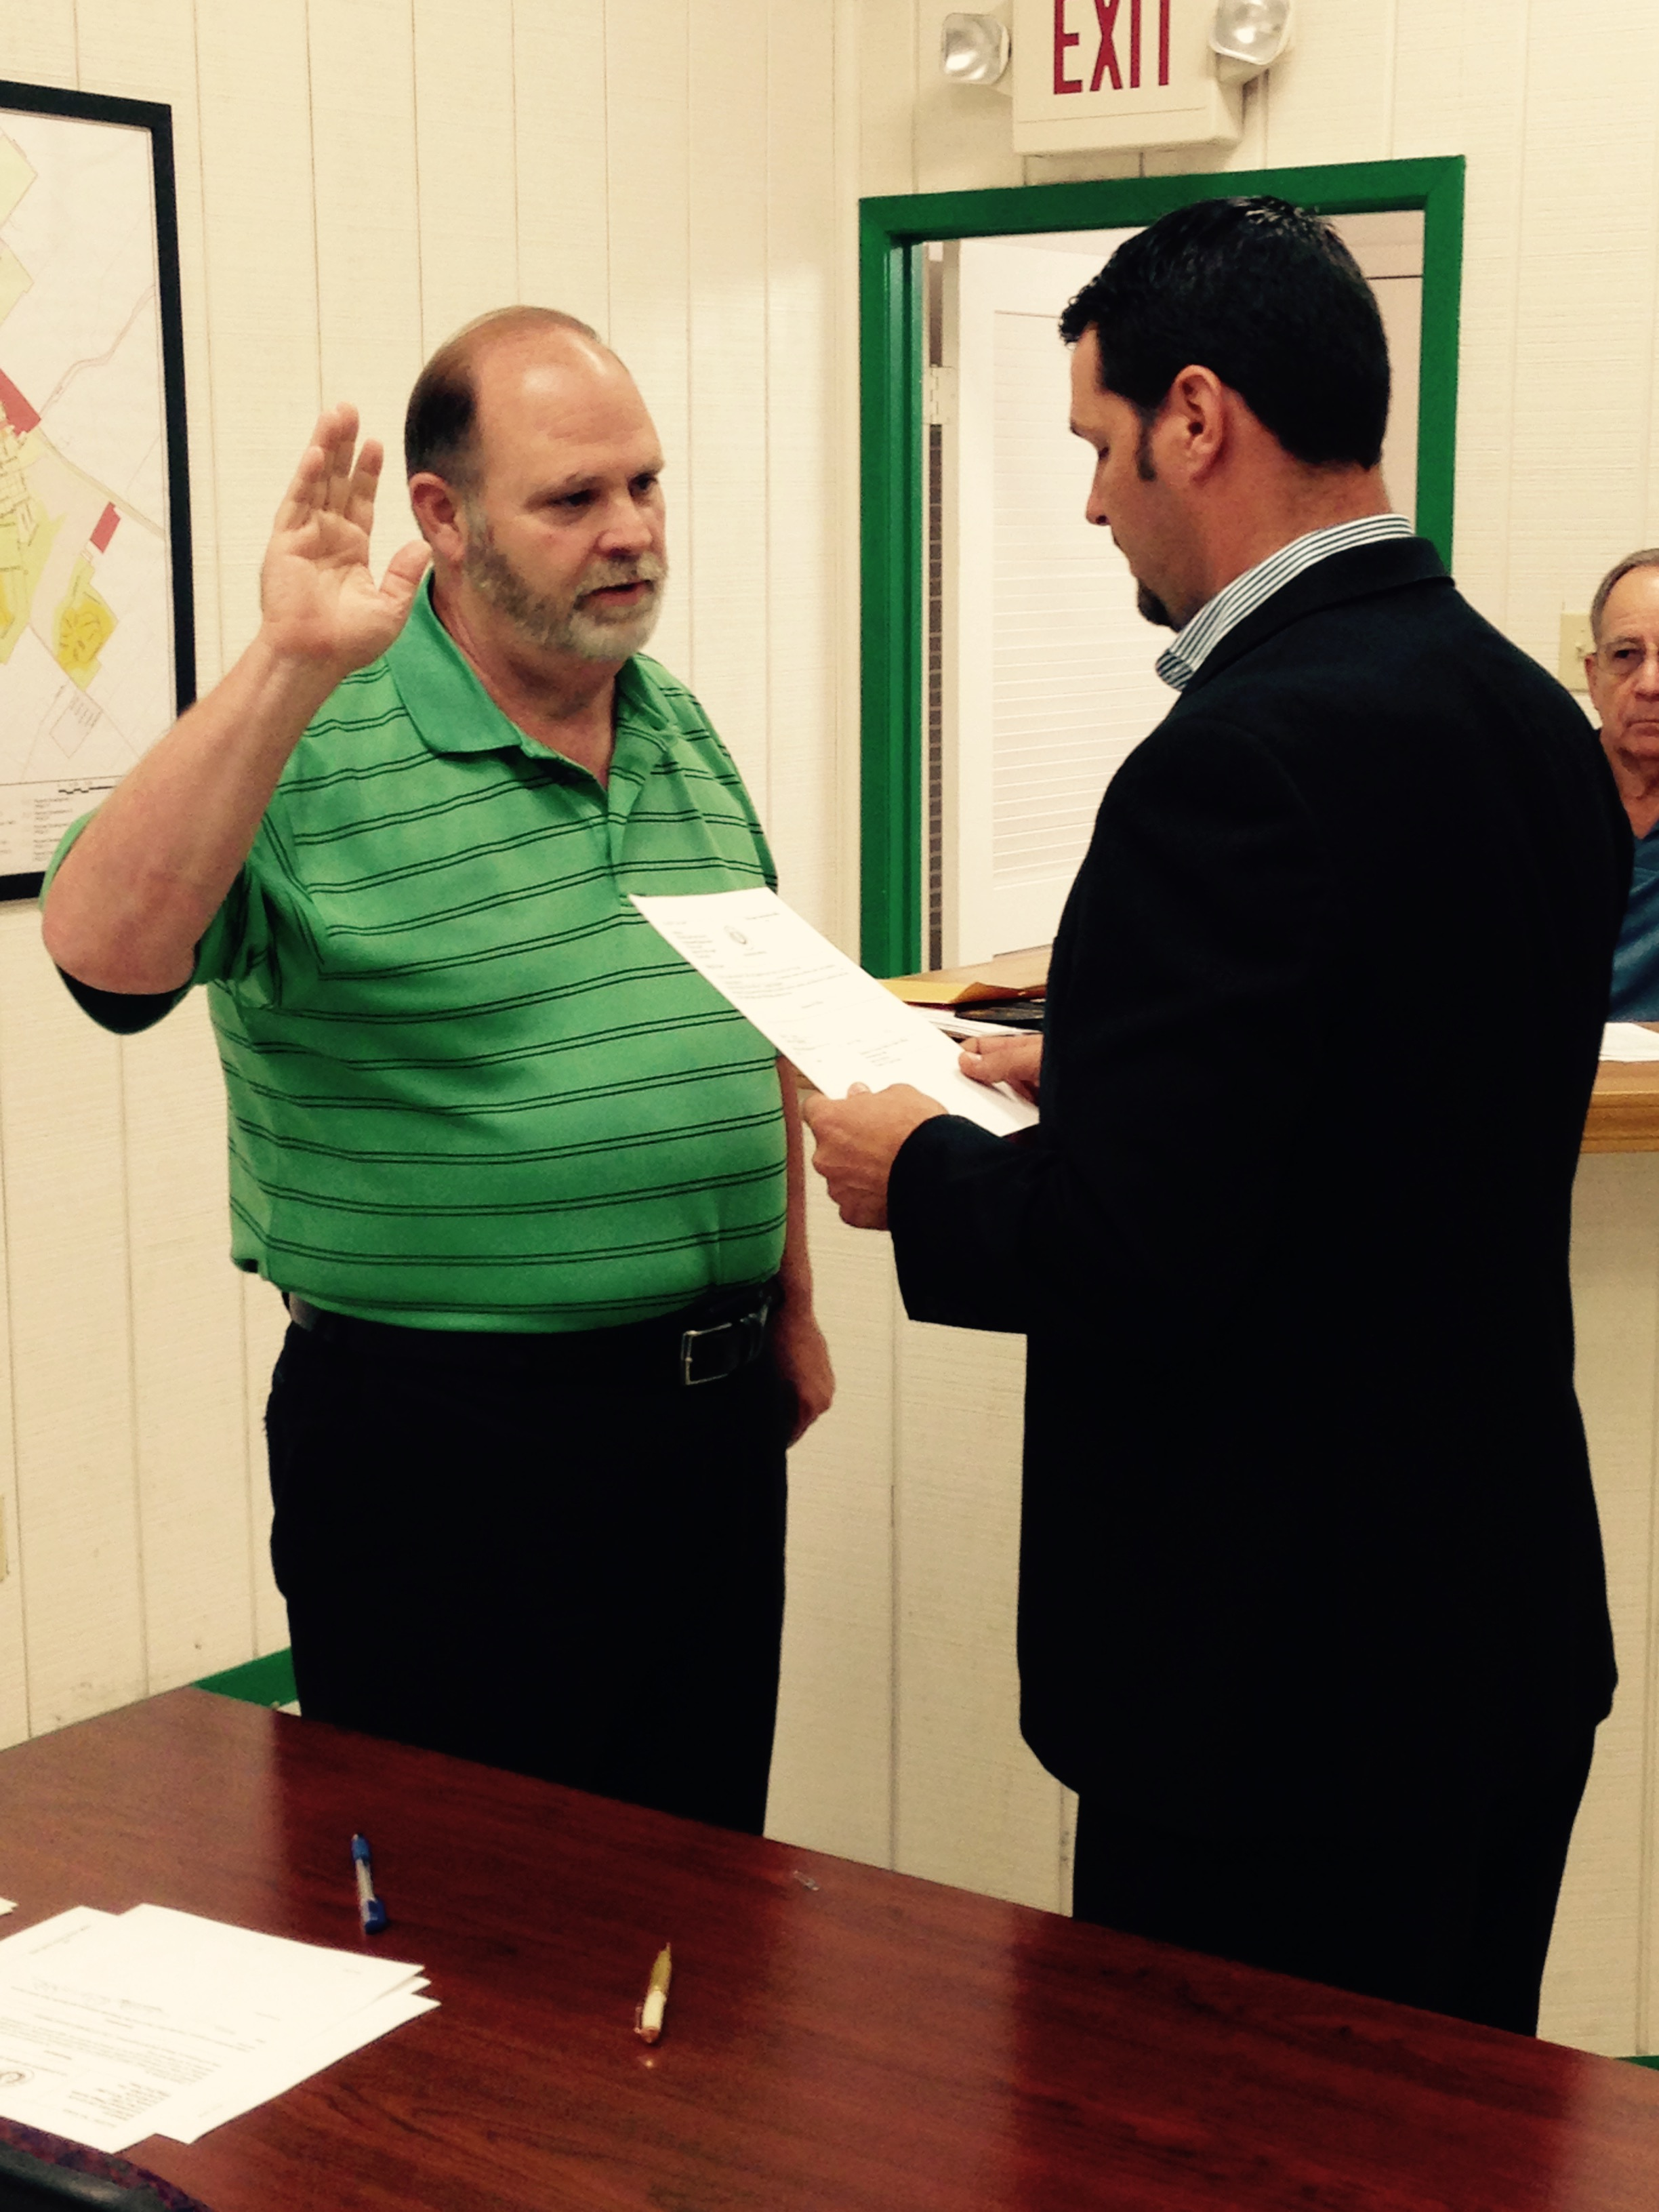 danny kirbie swearing in